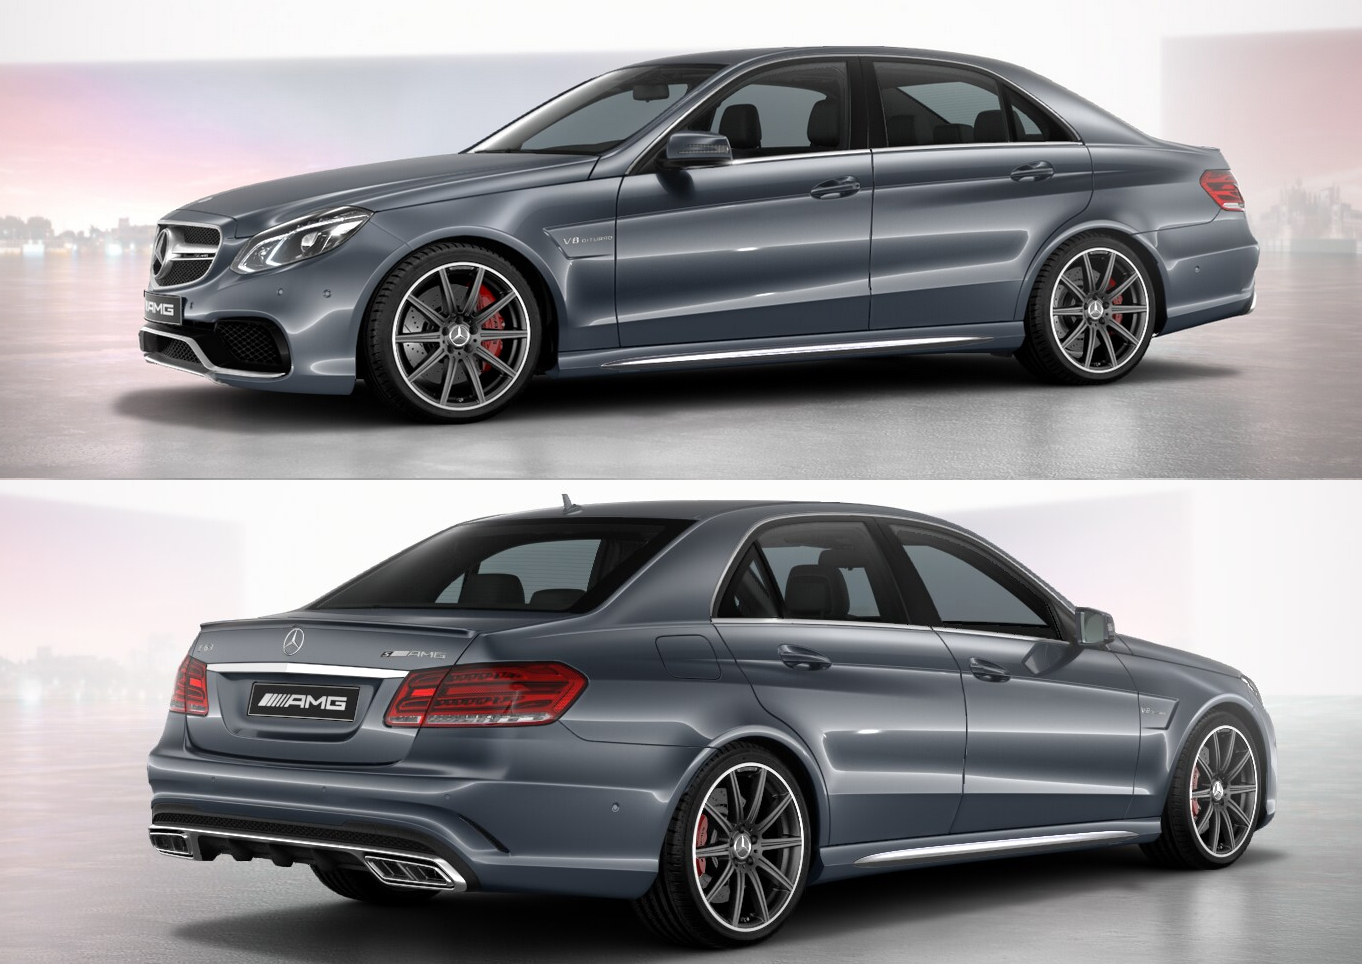 AMG 63 Styling E-Klasse W212 goeckel automobilveredelung